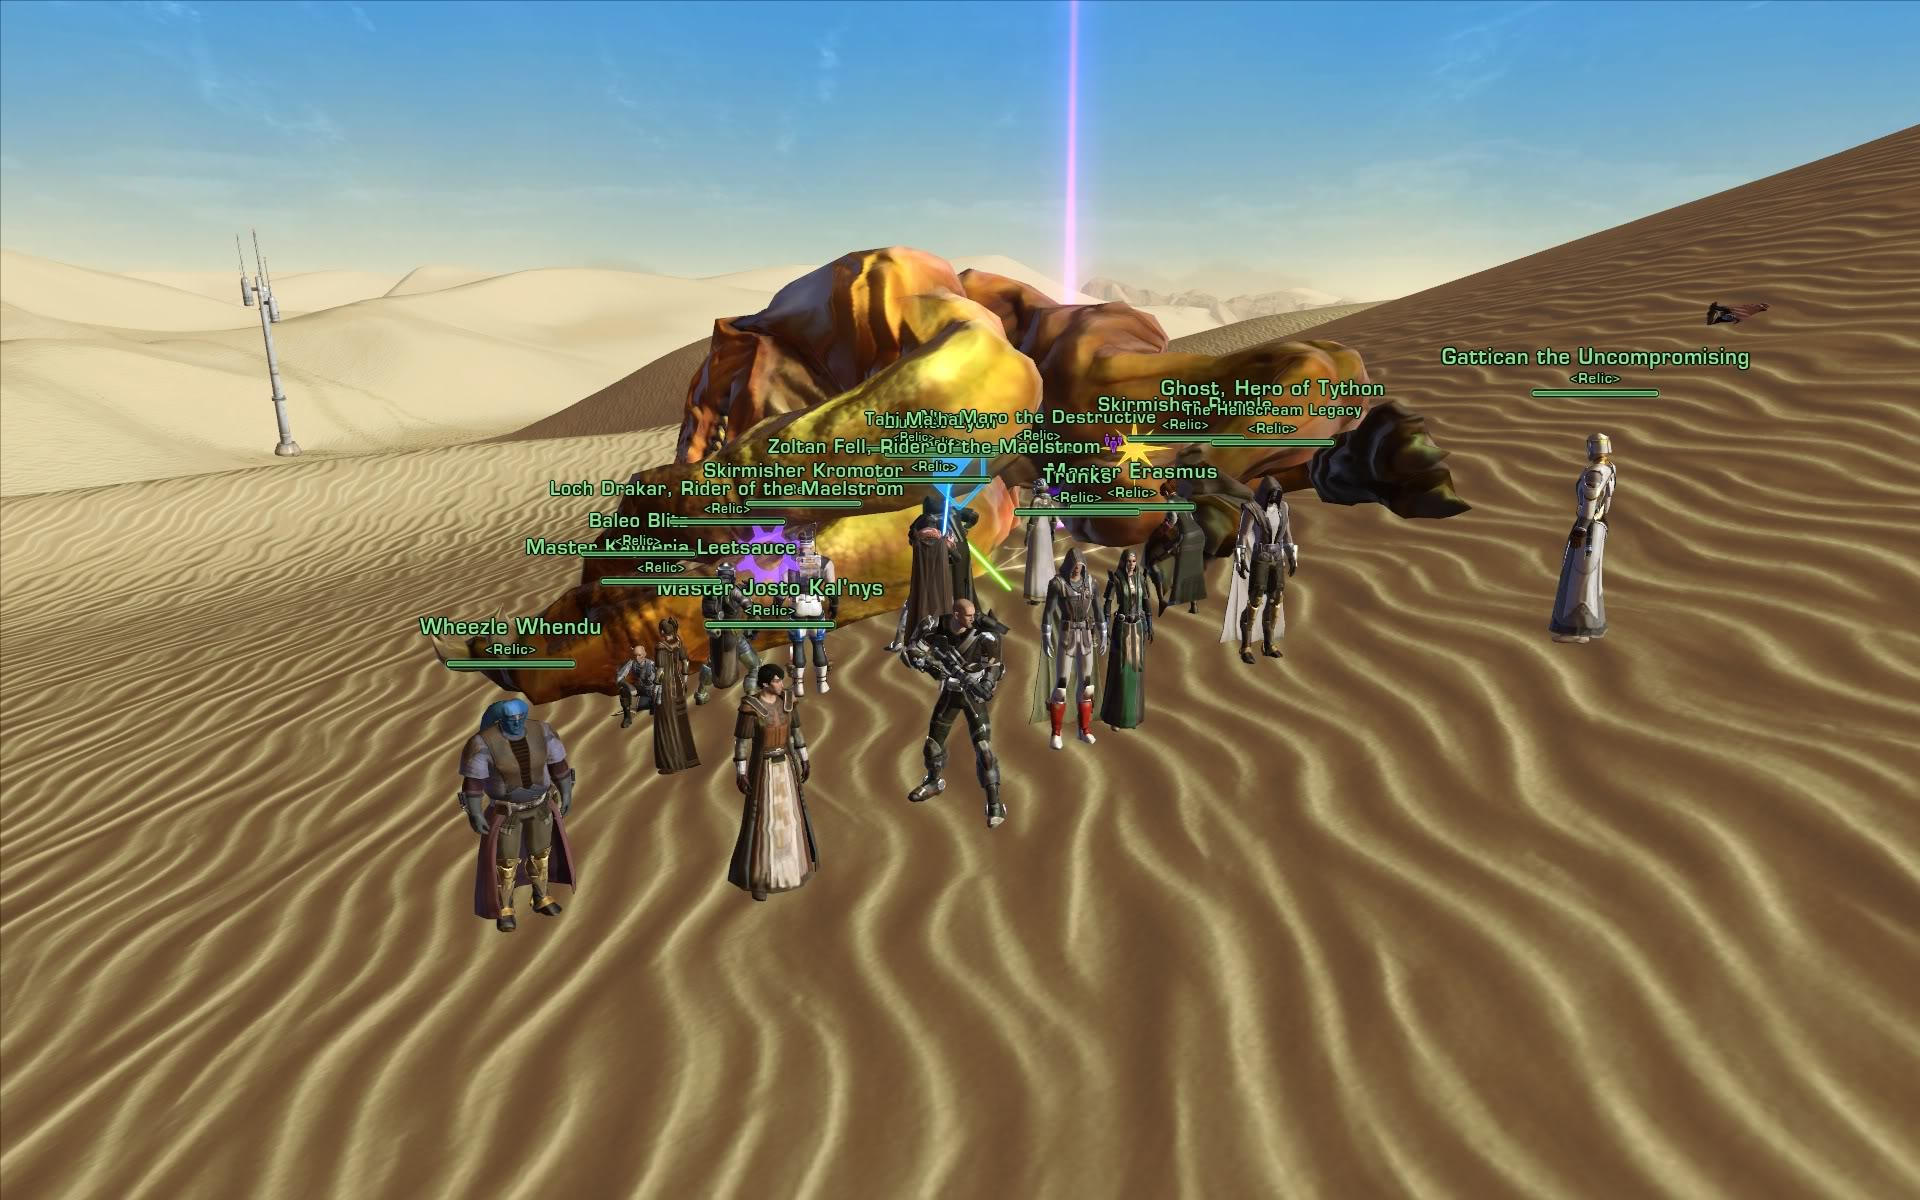 swtor world boss guides rh swtorstrategies com Digital Literacy Strategy Guide Generic Strategy Guide